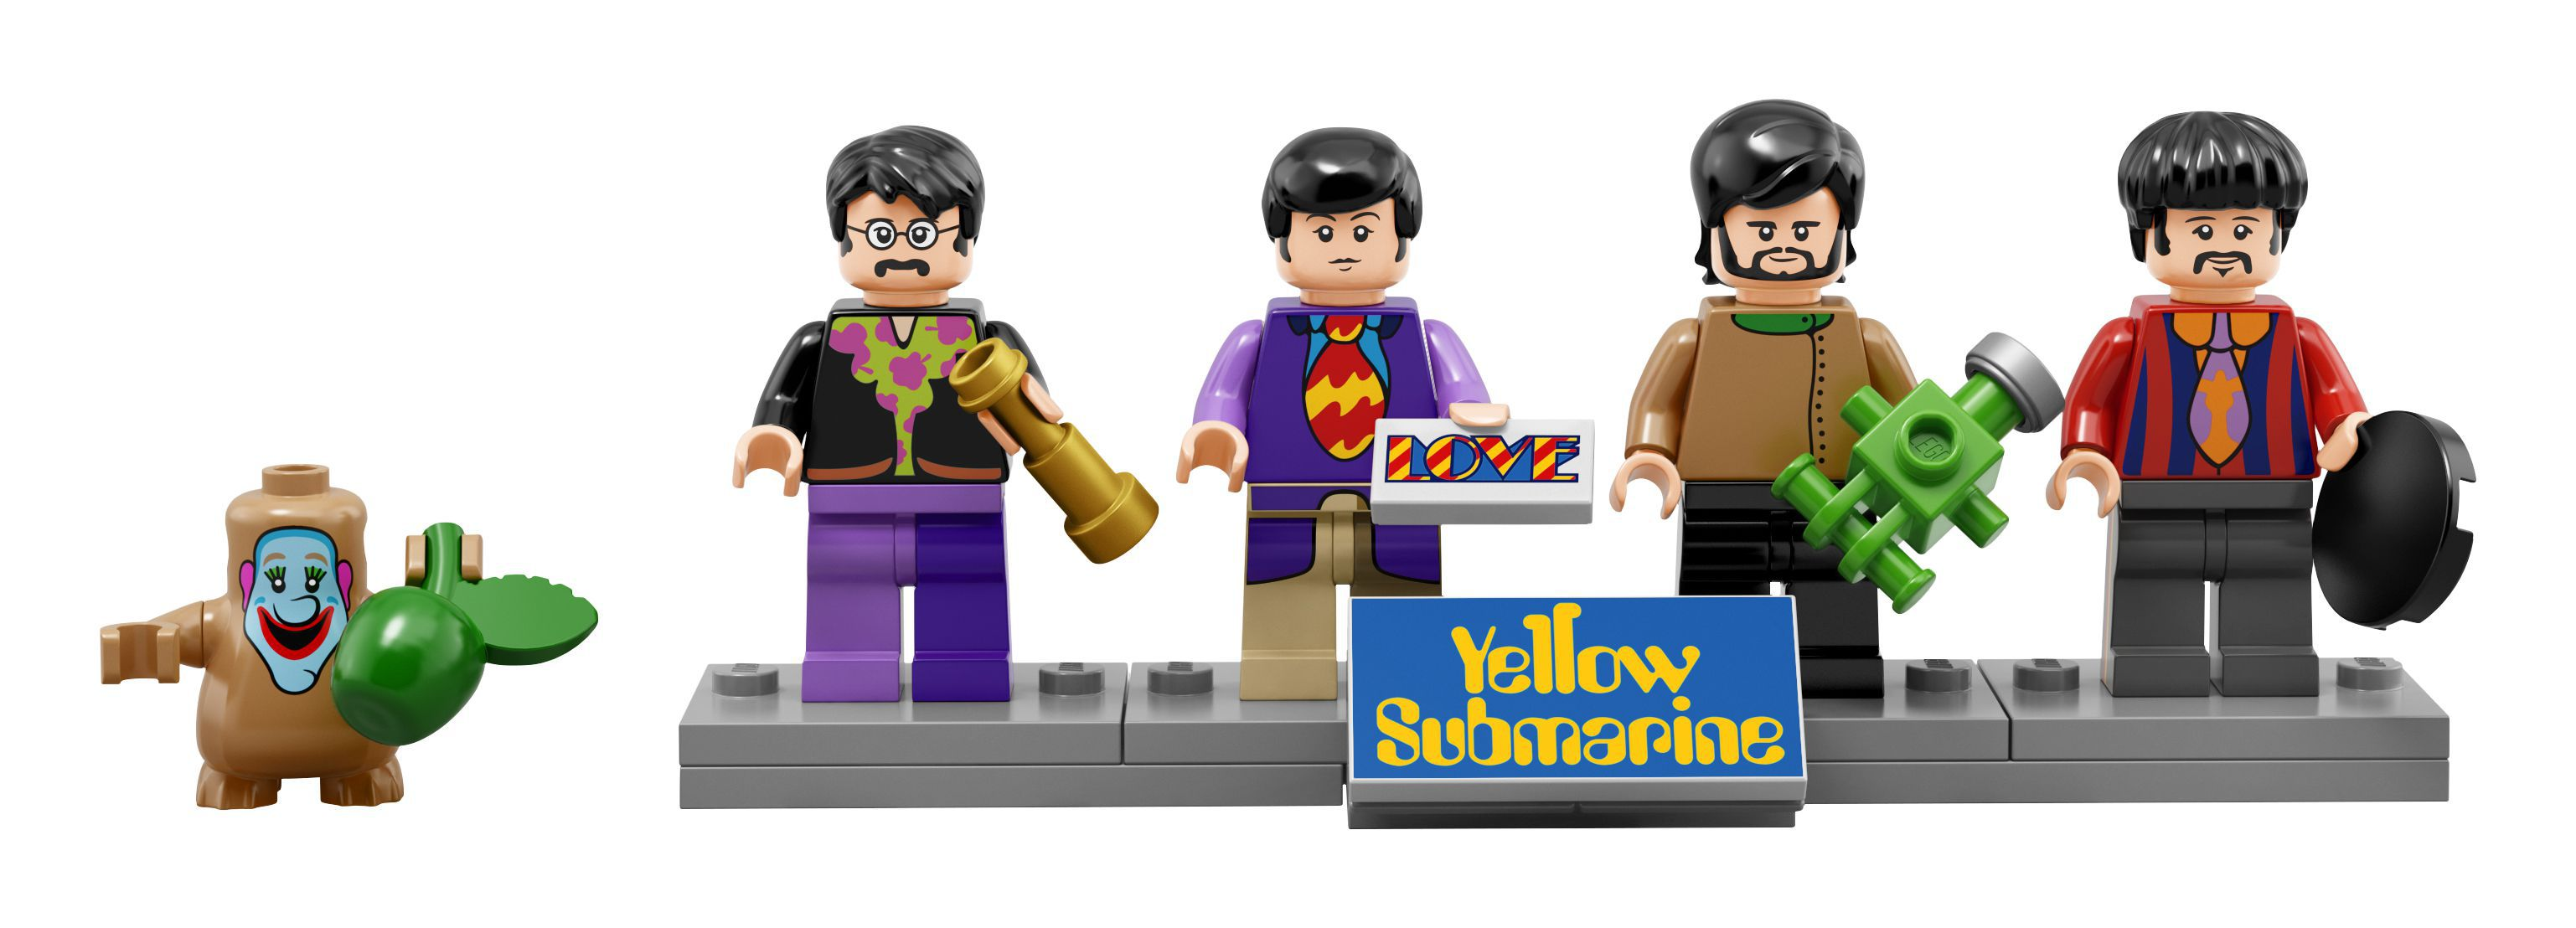 LEGO celebrates The Beatles with Yellow Submarine tribute set, movie